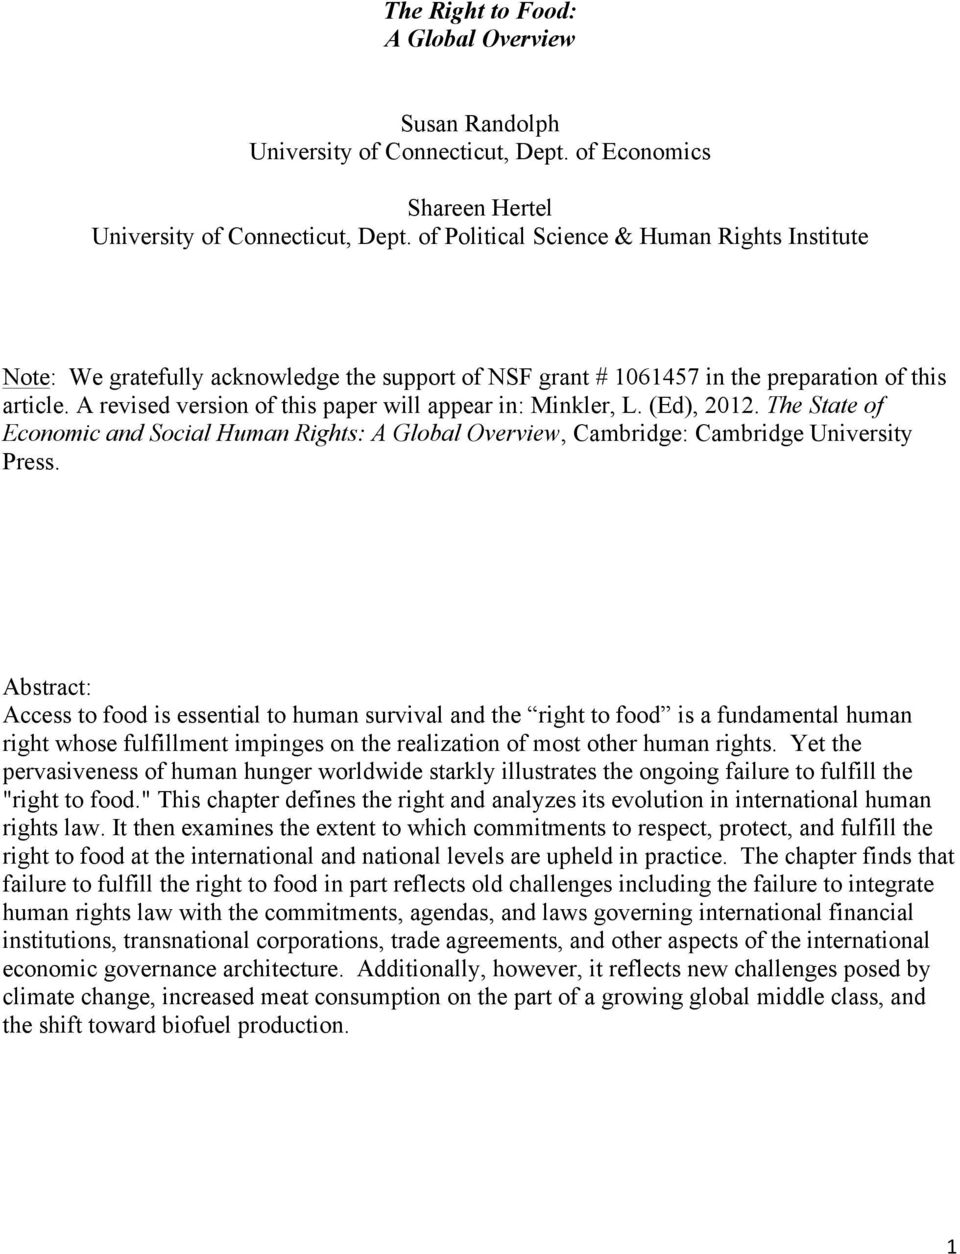 A revised version of this paper will appear in: Minkler, L. (Ed), 2012. The State of Economic and Social Human Rights: A Global Overview, Cambridge: Cambridge University Press.